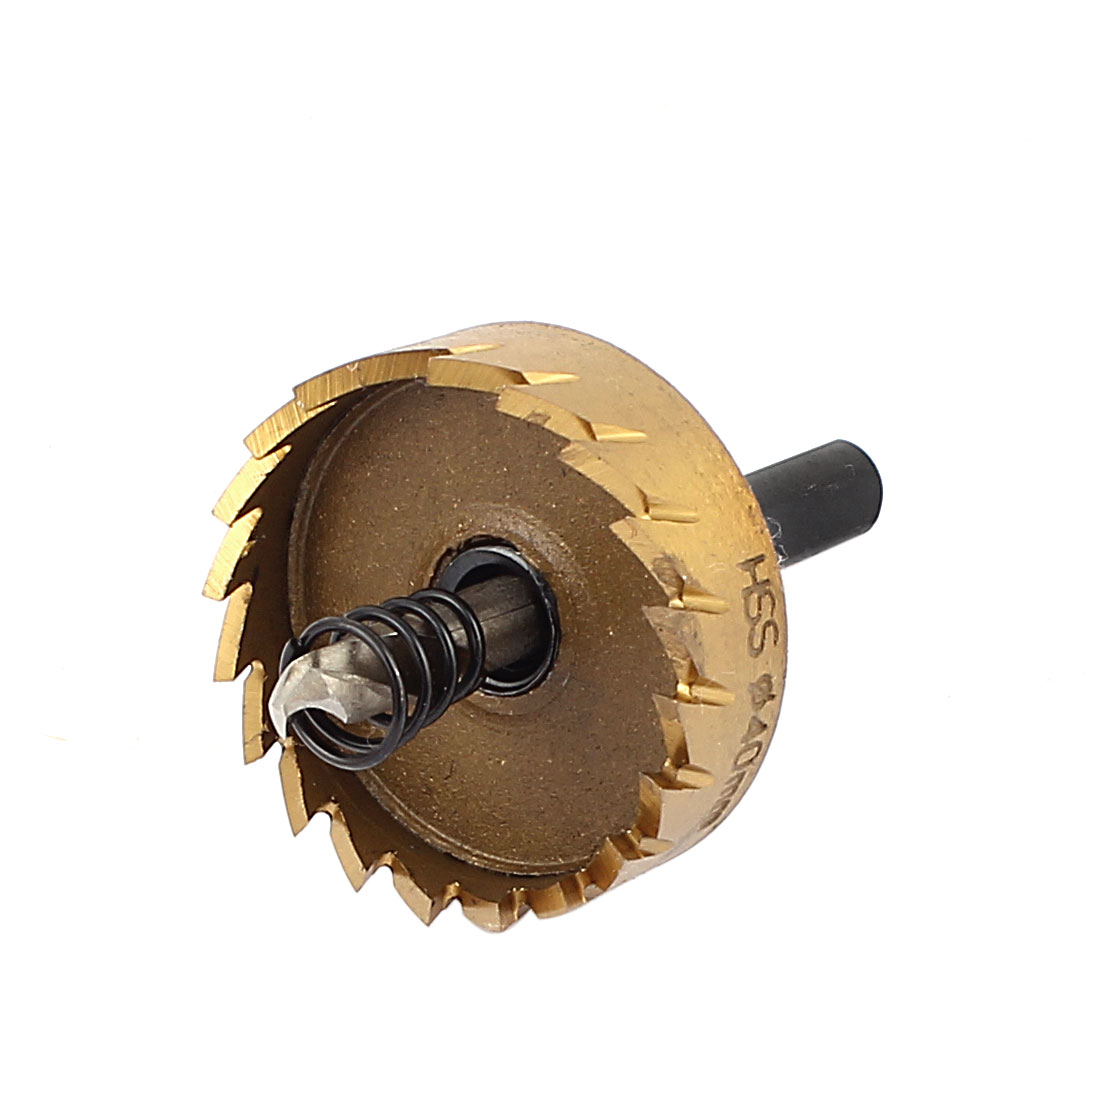 40mm Diameter Rake Teeth Twist Drill Bit Hole Saw with Hex Wrench